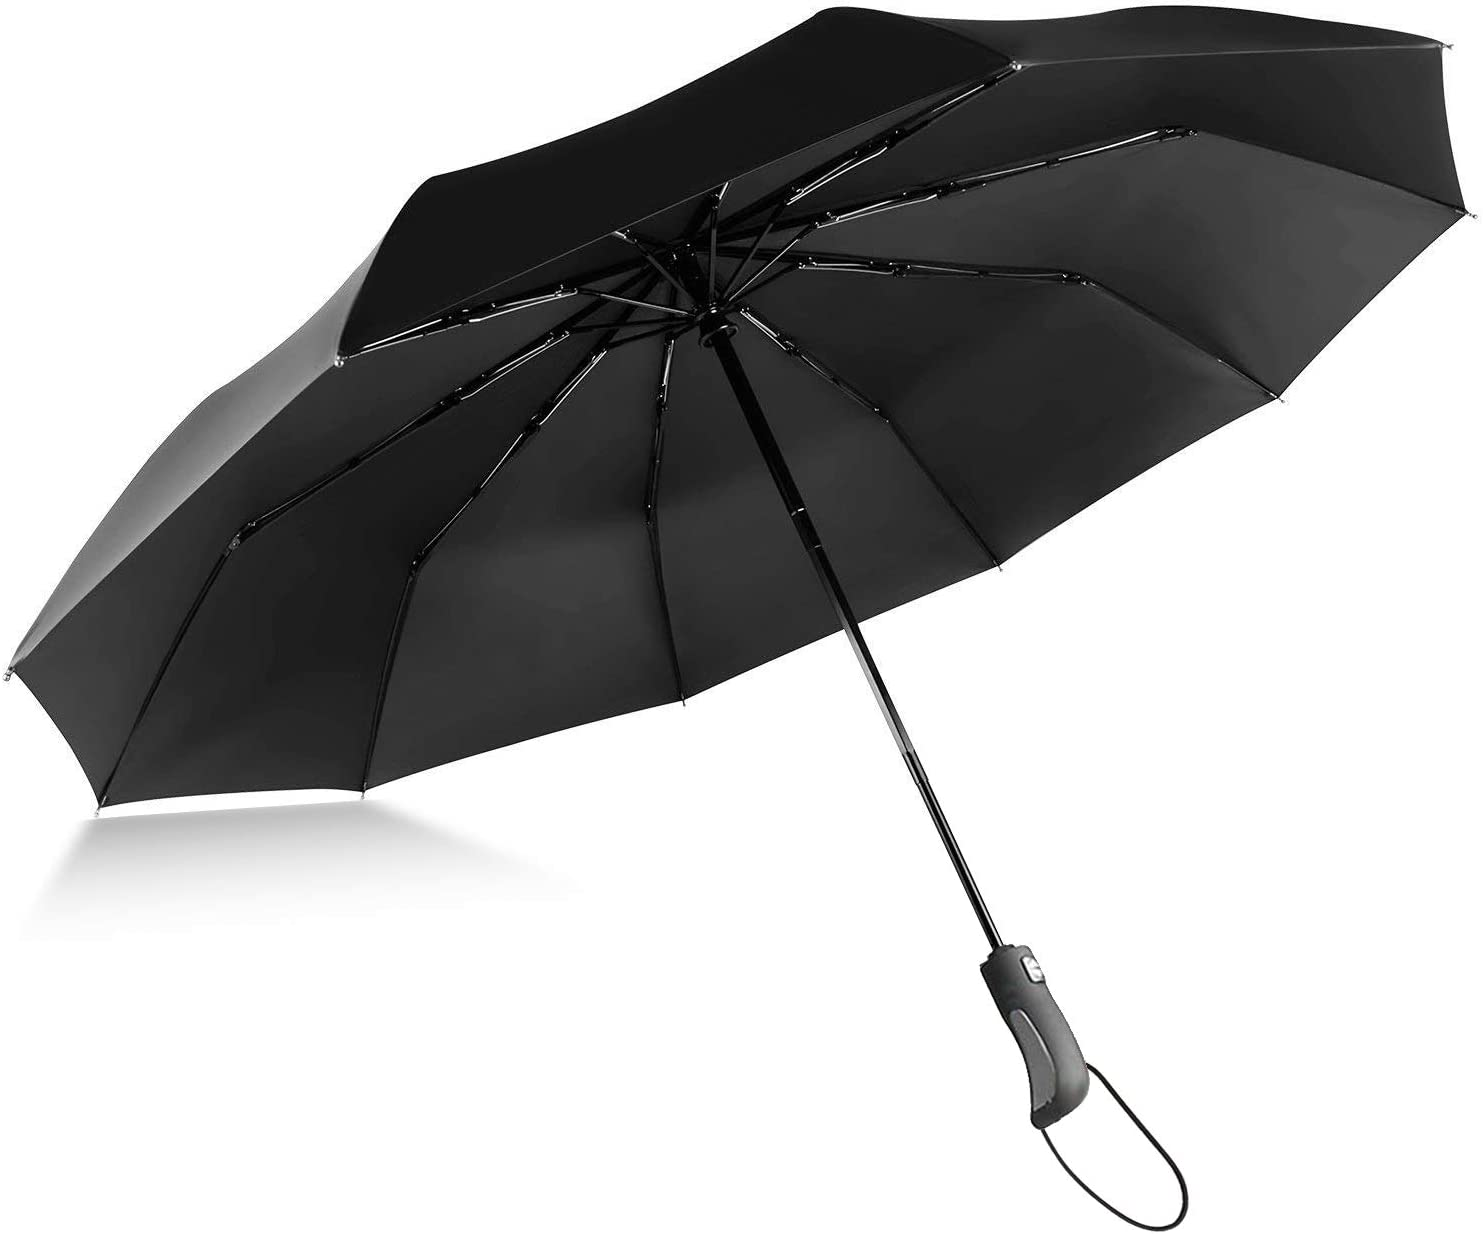 ABCCANOPY Black Folding Travel Umbrella with black handle,Automatic Open Close,Portable Compact with UV Protection,10Ribs Windproof